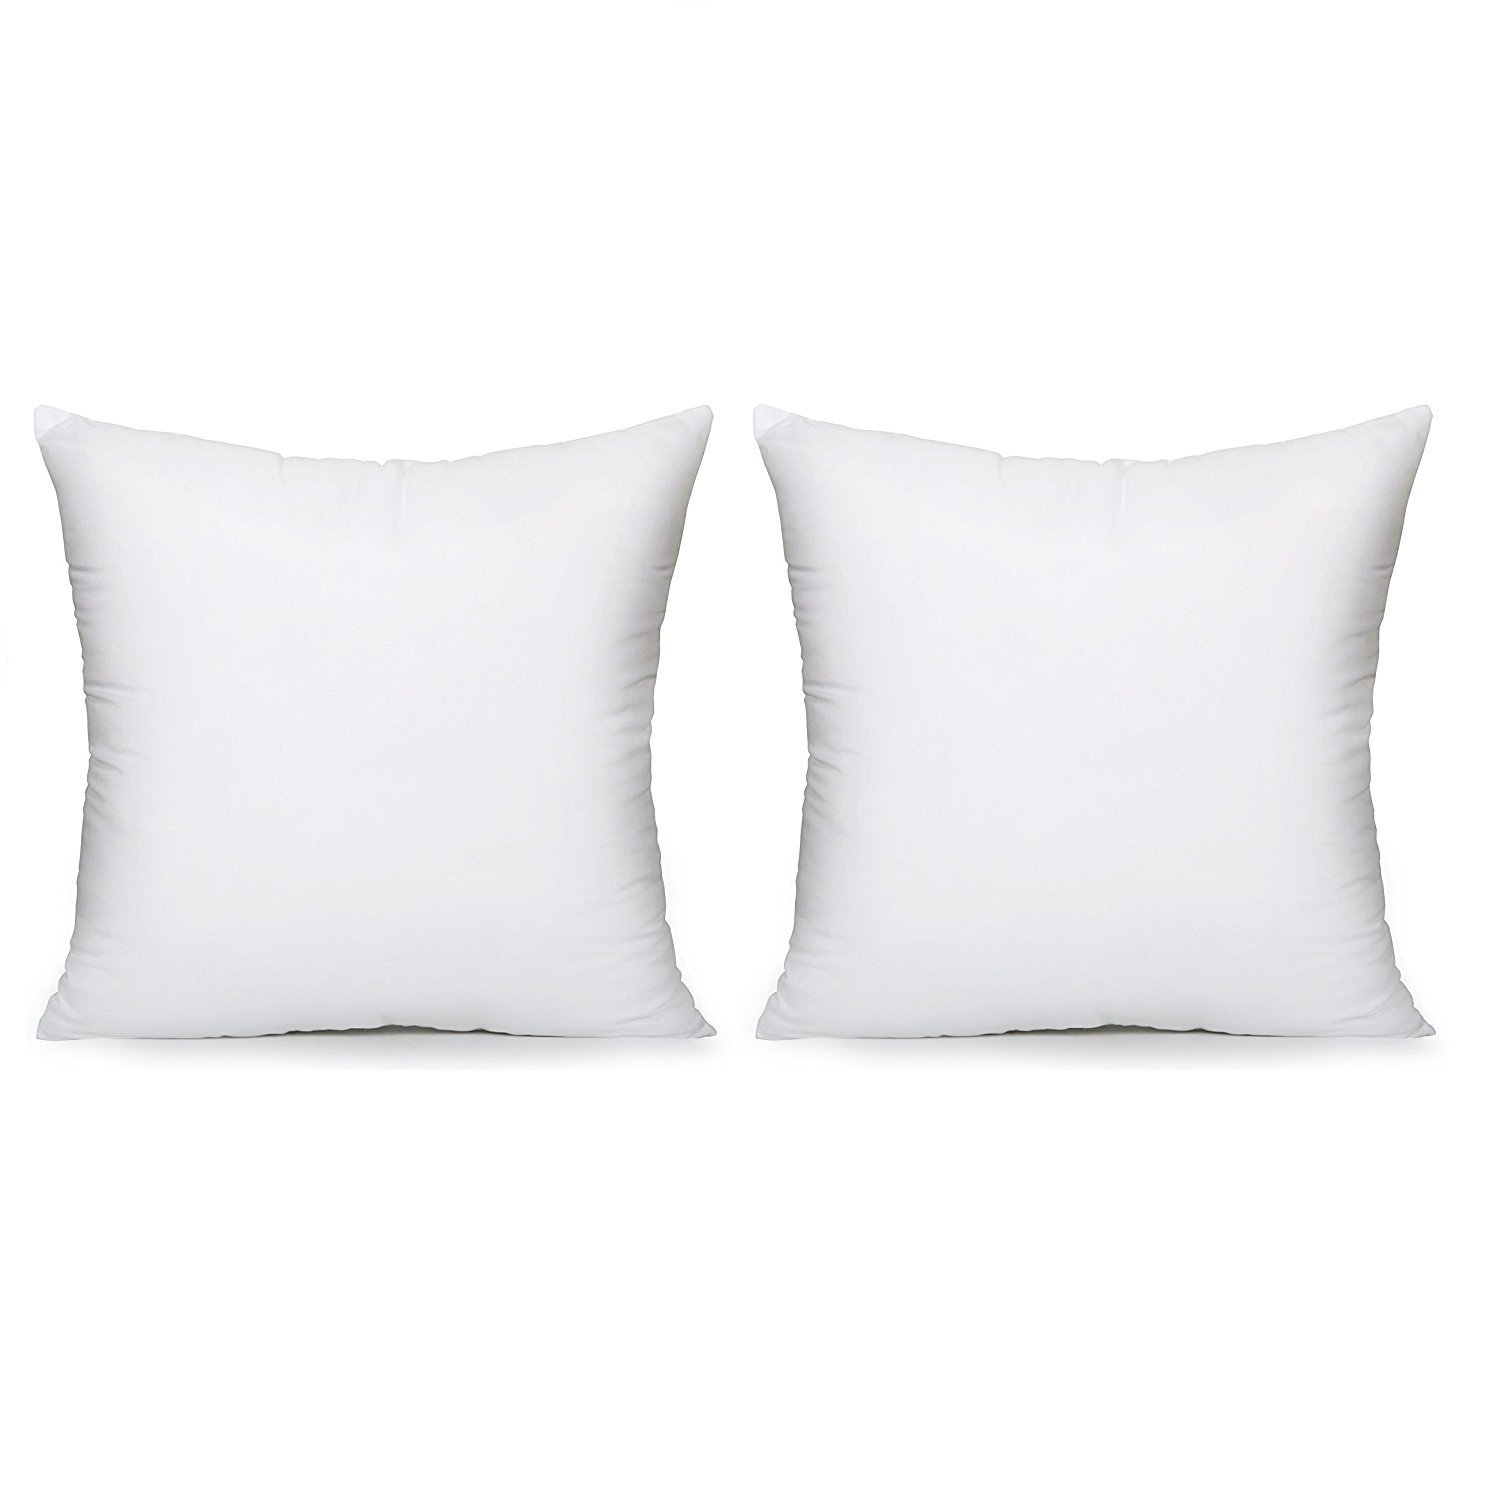 24 x 24 Acanva Throw Pillow Inserts Couch Stuffer Pillows Hypoallergenic Square Form Washable Cushion Filler White 2 Pack